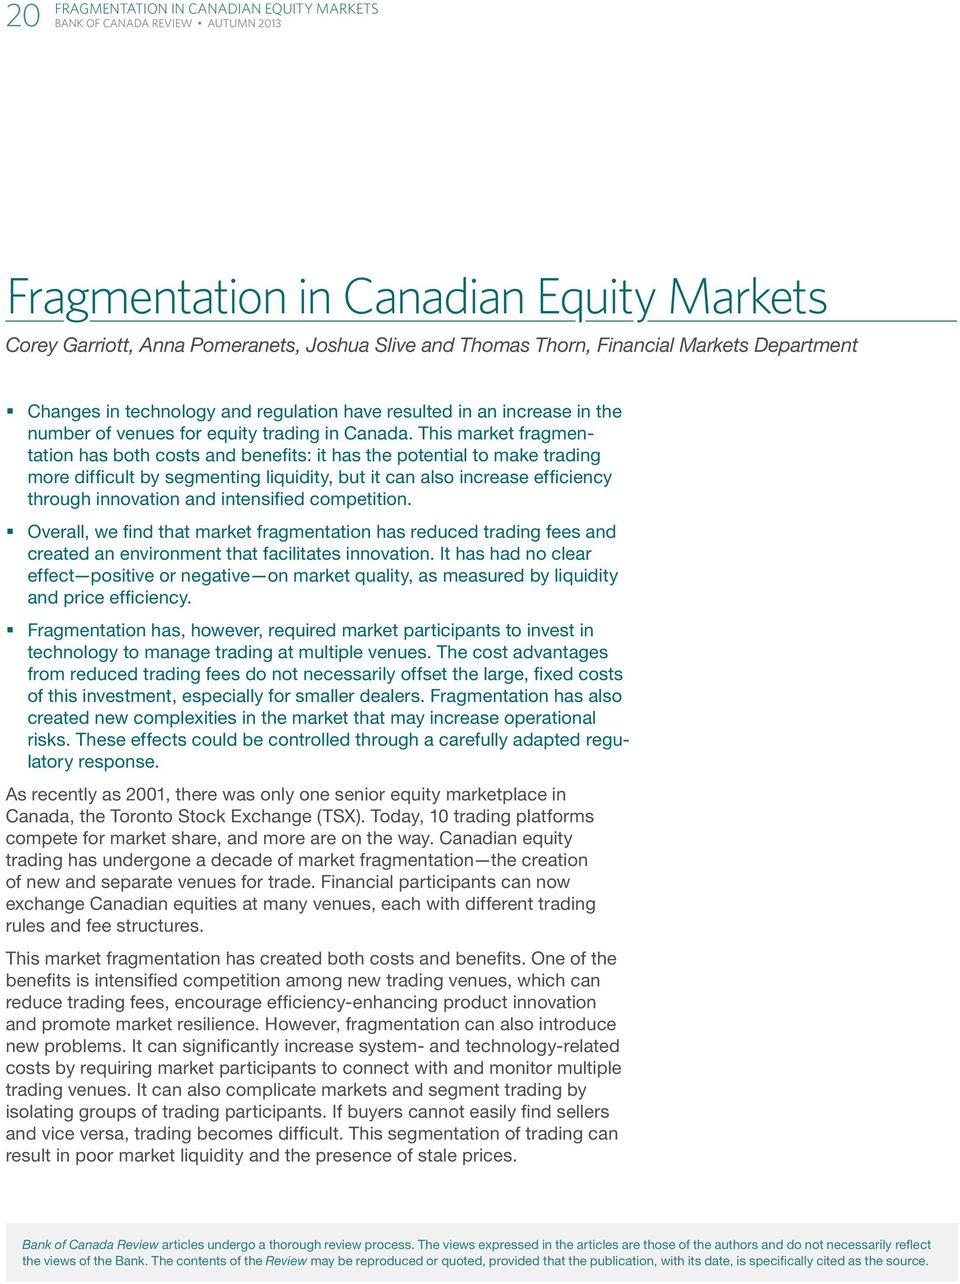 This market fragmentation has both costs and benefits: it has the potential to make trading more difficult by segmenting liquidity, but it can also increase efficiency through innovation and